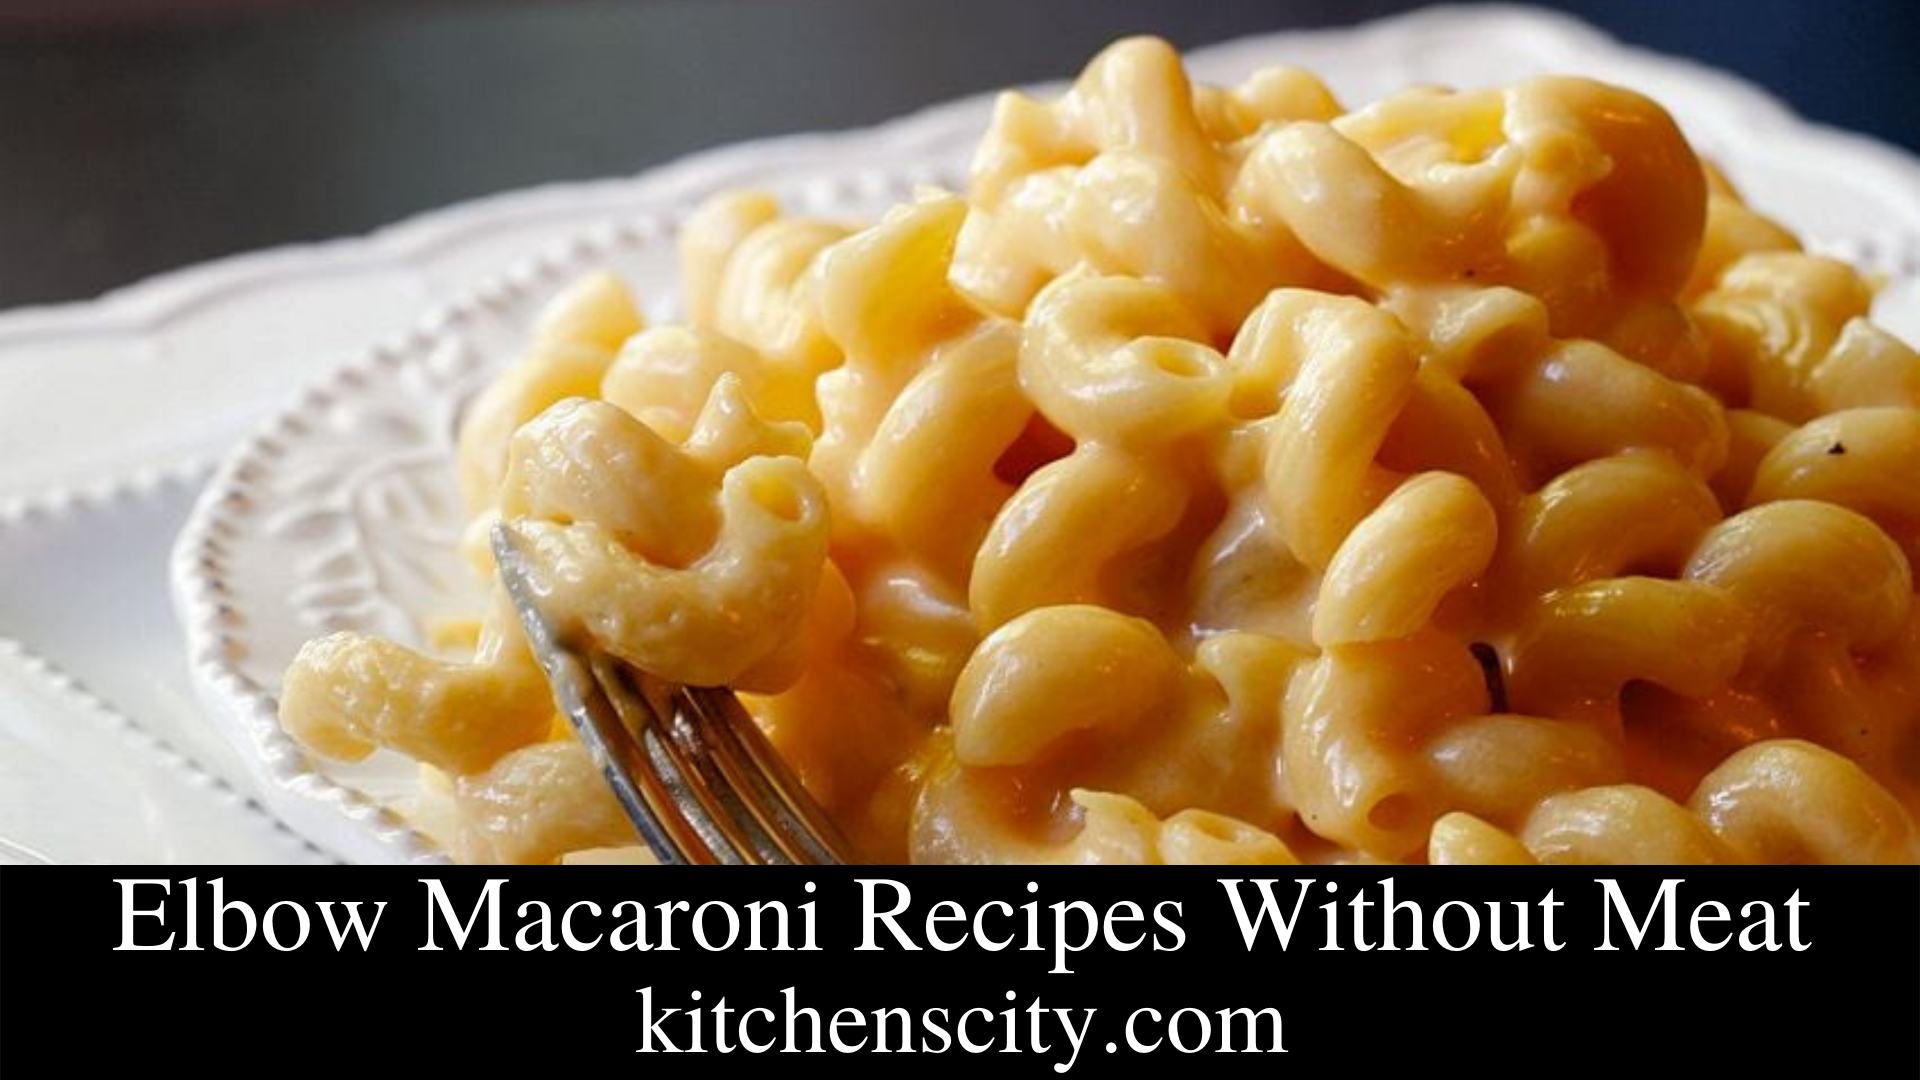 Elbow Macaroni Recipes Without Meat